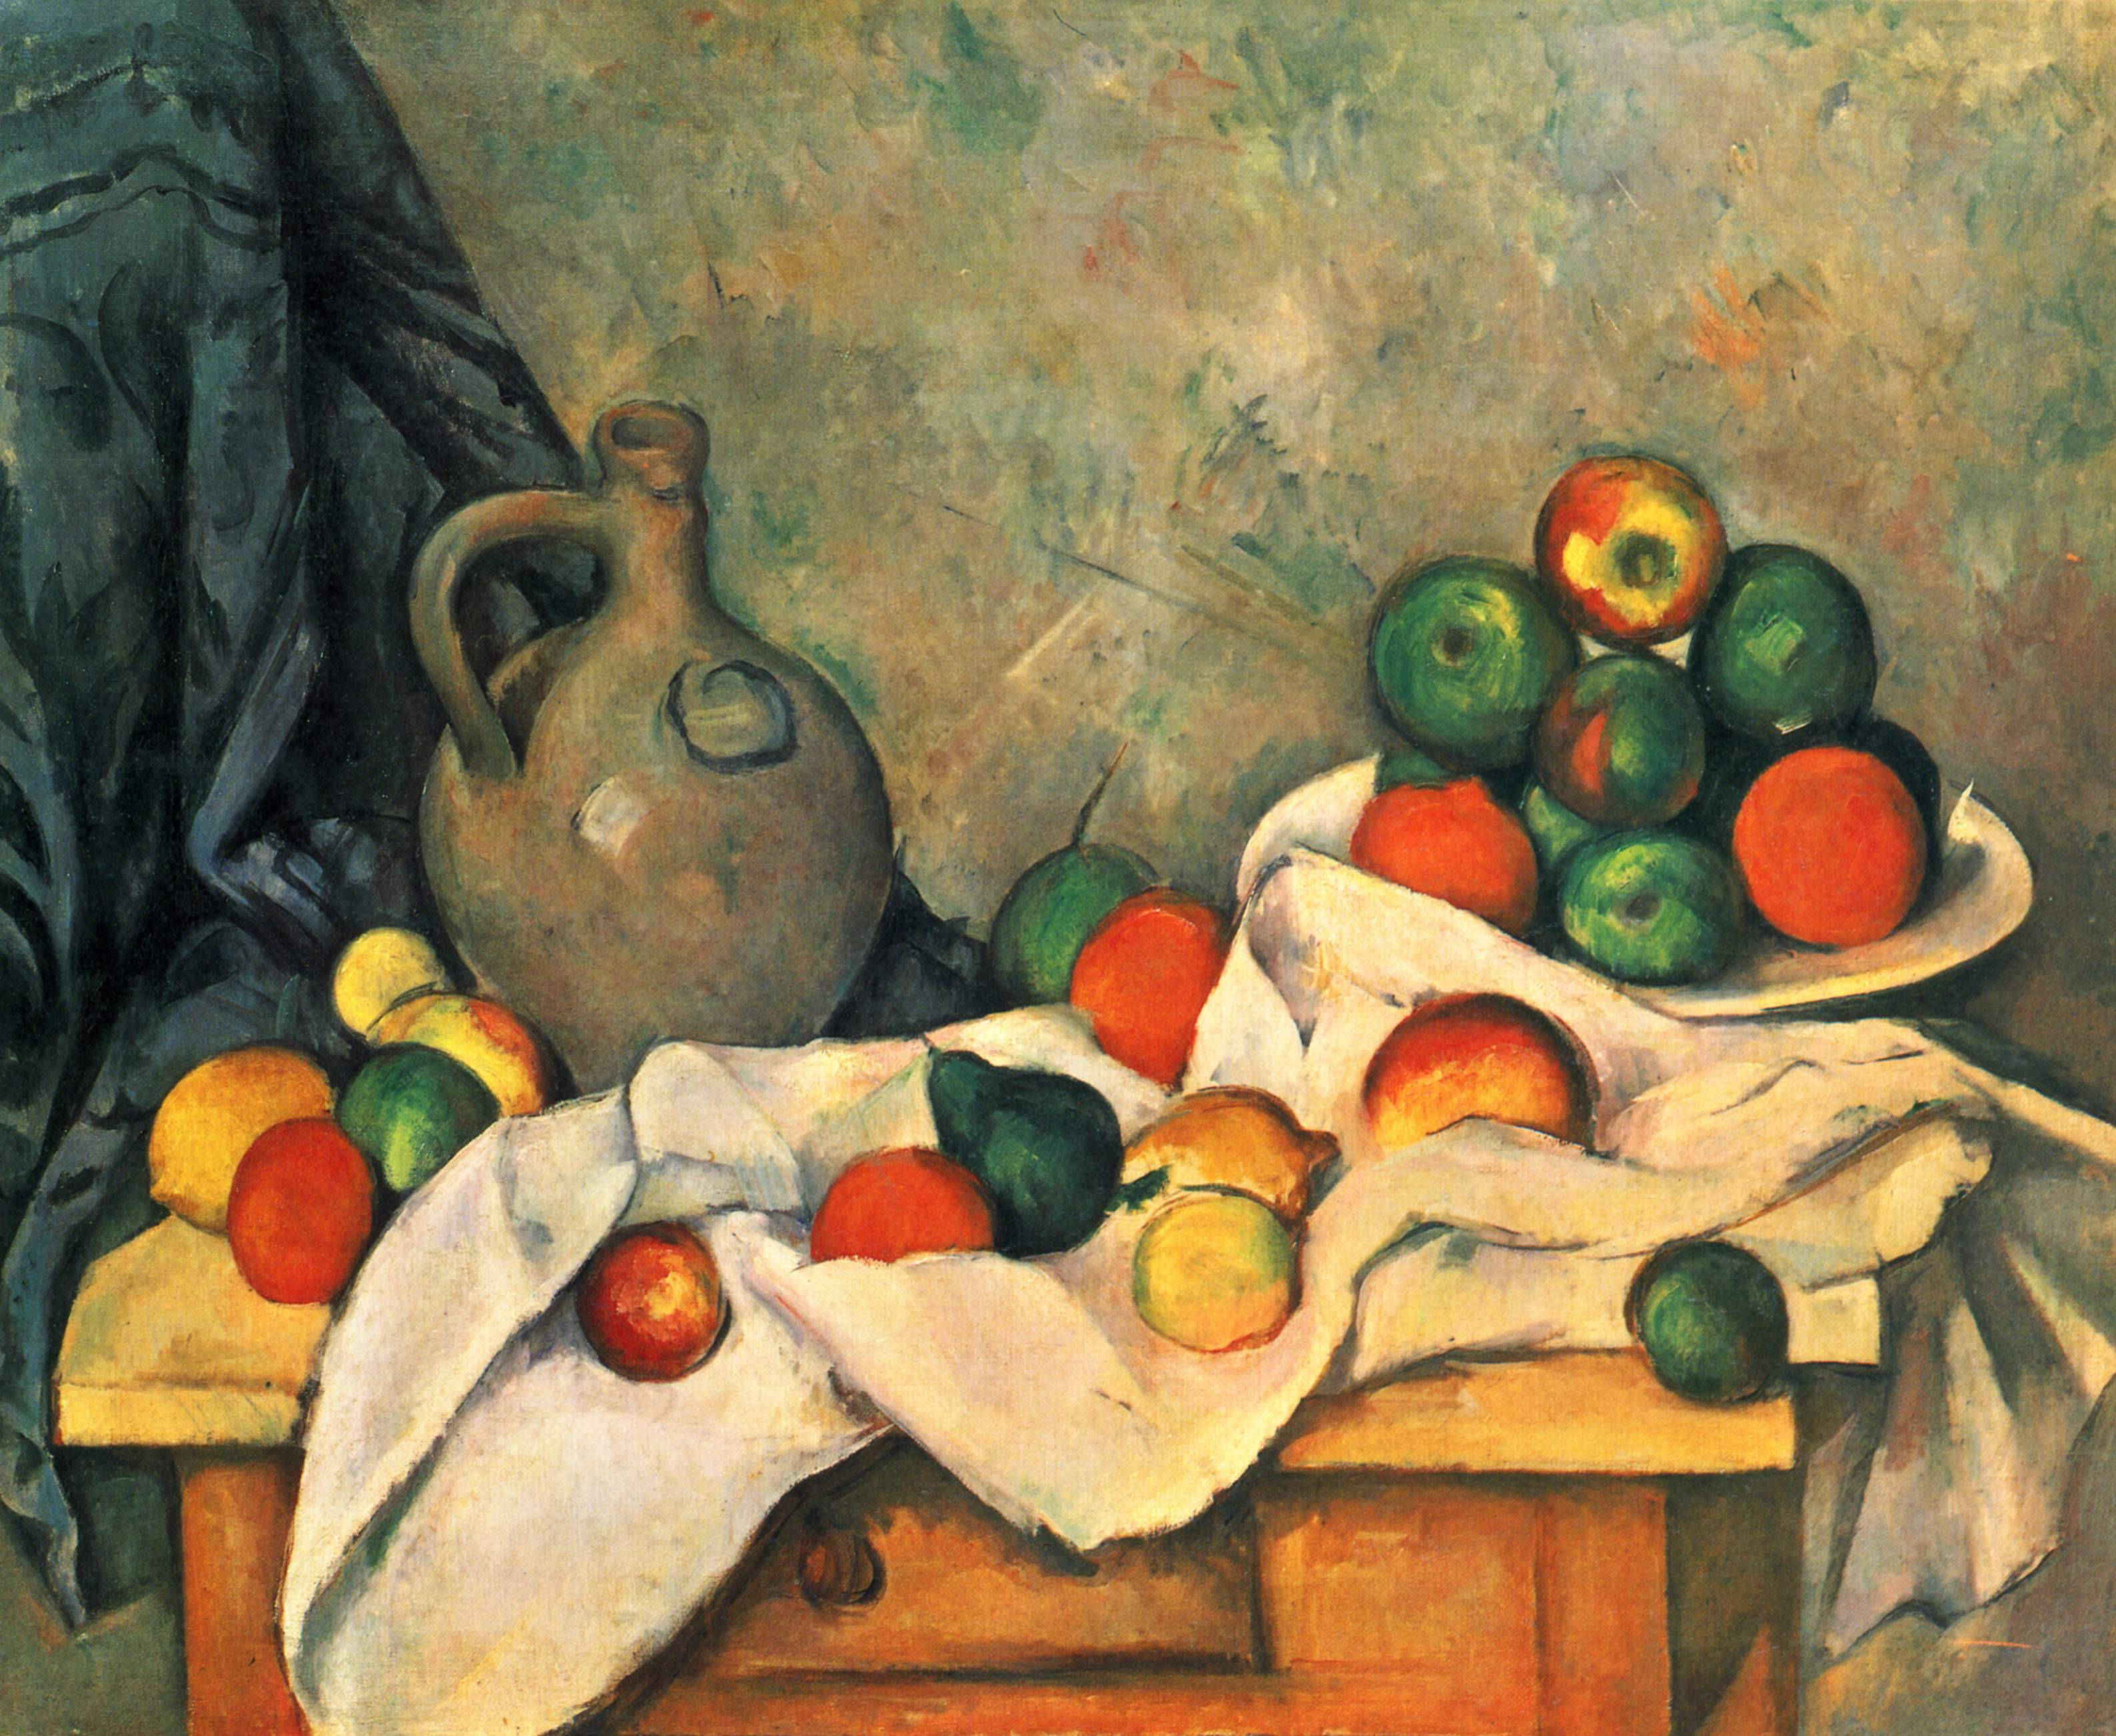 Image via Wikipedia; artwork by Cezanne.